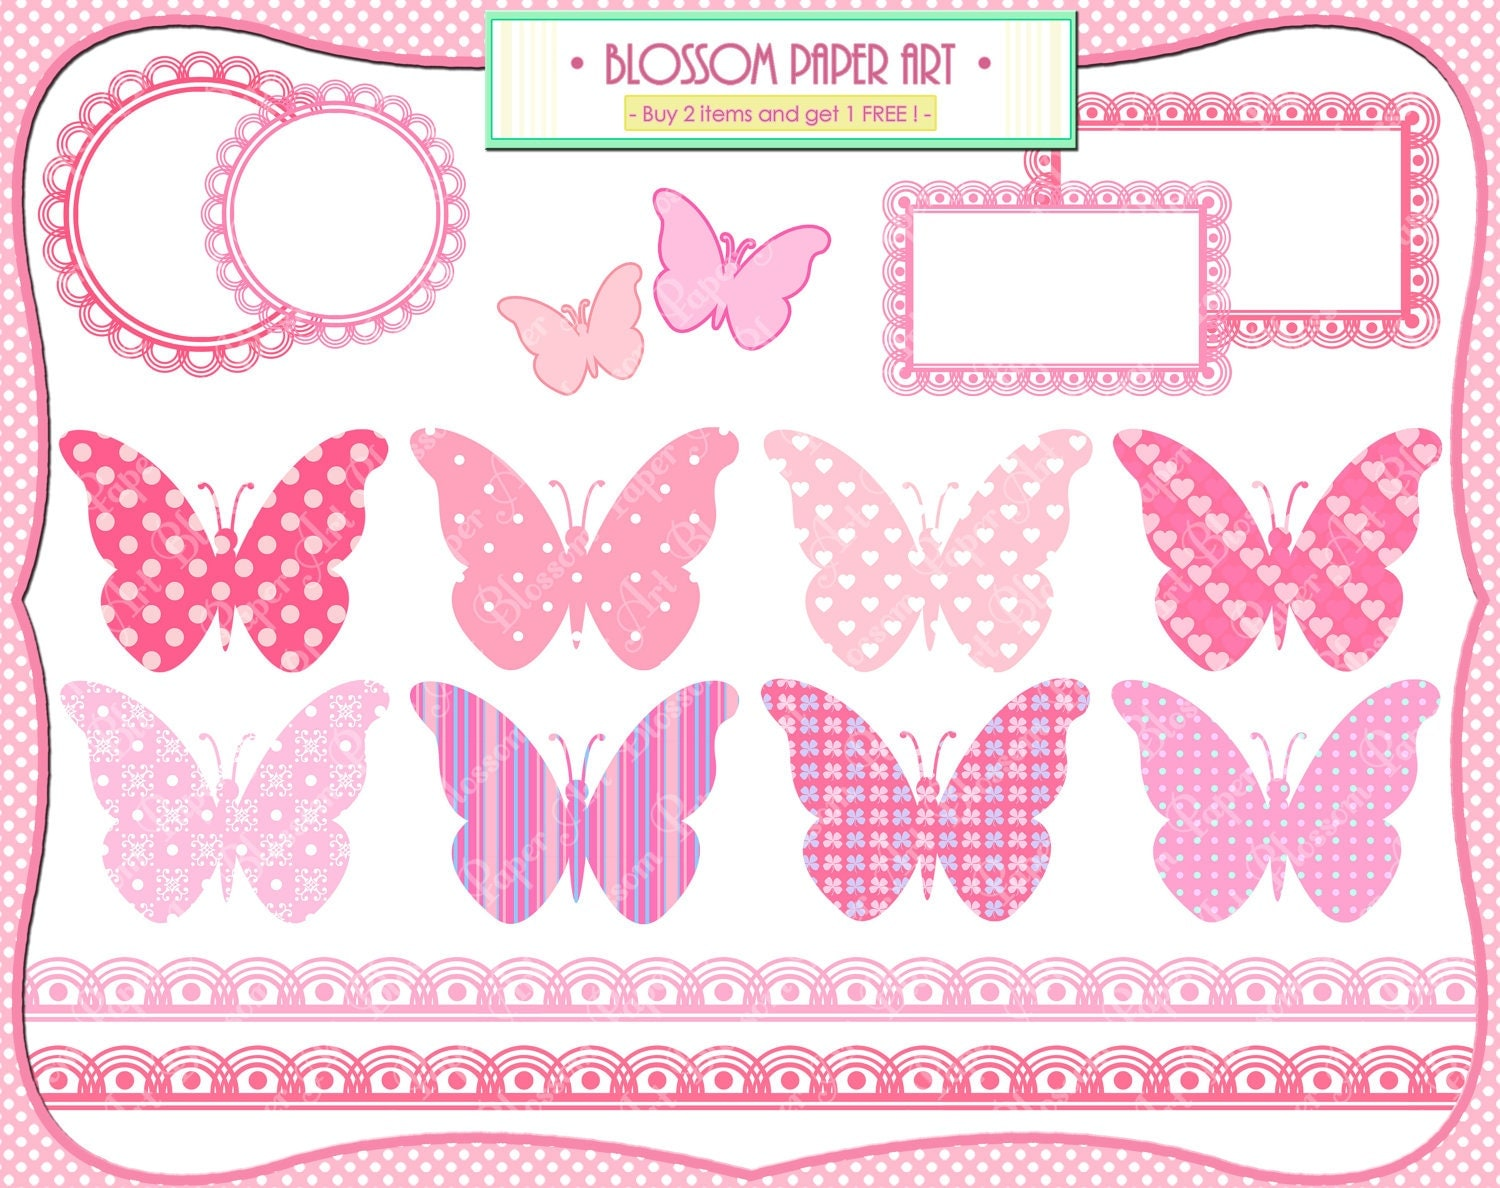 Uncategorized Girl Printables baby girl butterflies pink shower printables invitations labels borders scrapbooking 1370